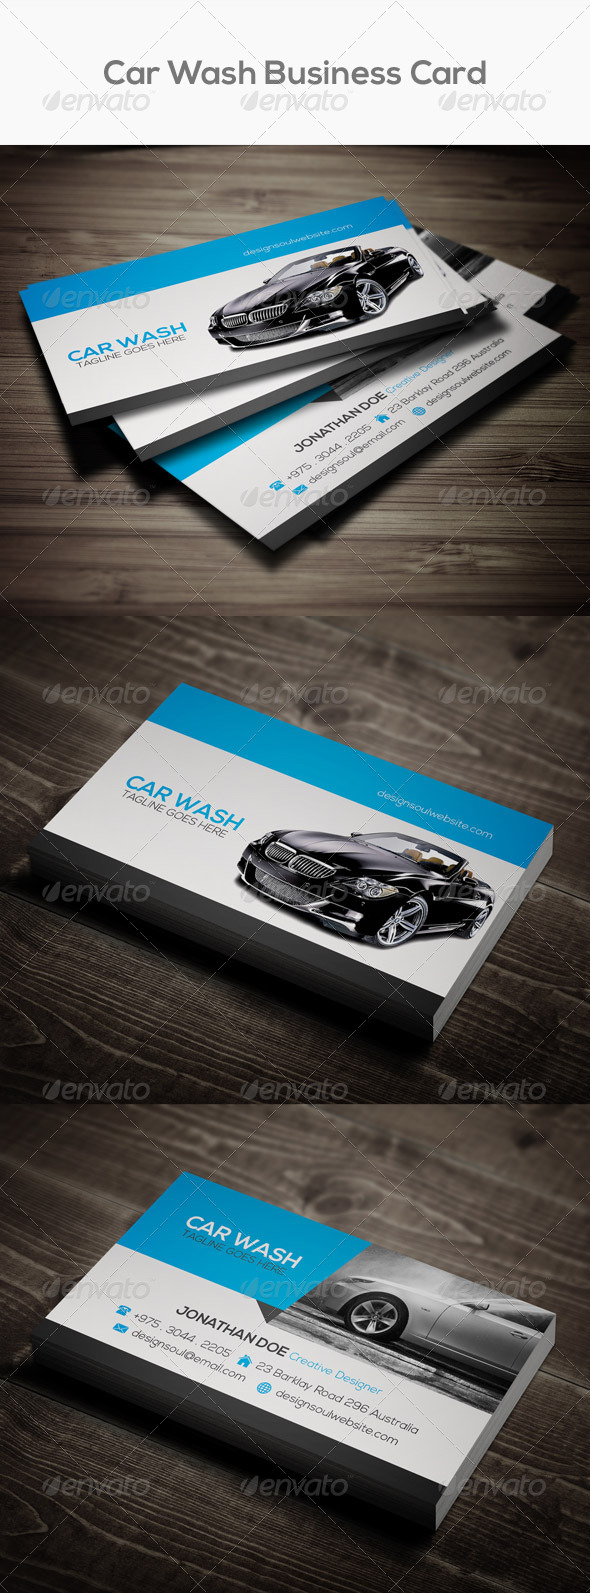 Car Wash Business Card Graphics Designs Templates